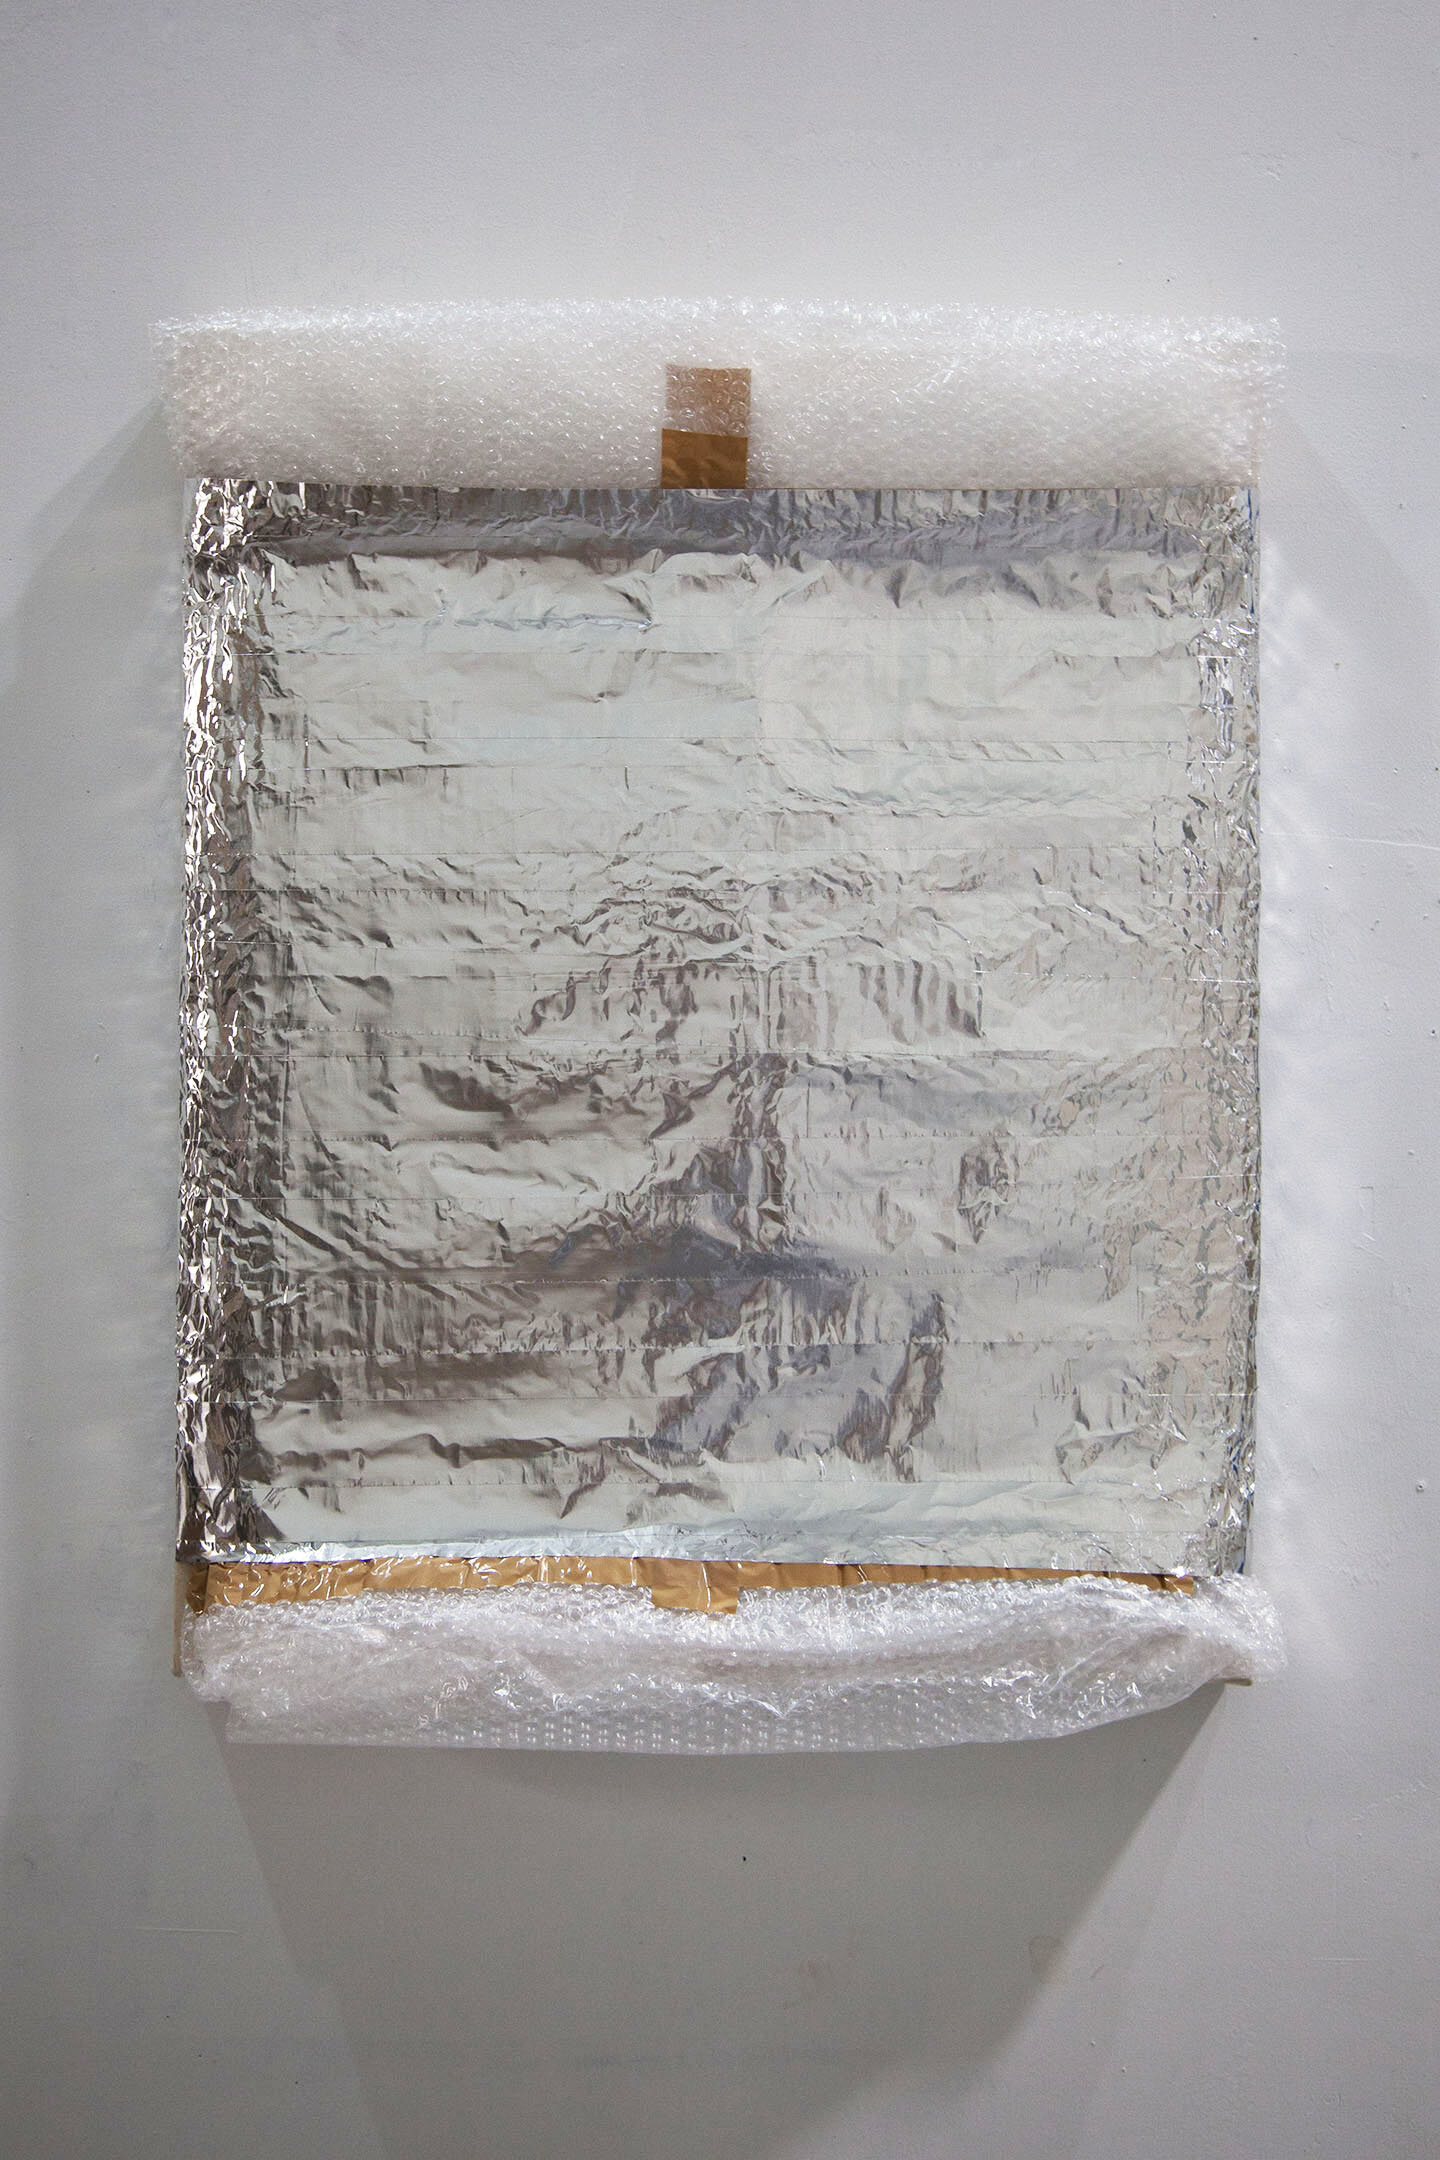 Preserved Paint [120 mL King's Blue, 120 mL Gold Yellow, 120 mL Titanium Buff Light, 120 mL Iridescent Black, 120 mL Light Violet] , 2018, acrylic on canvas over panel, plastic wrap, glassine, bubble wrap, packing tape, aluminum tape, 32 x 24 inches.